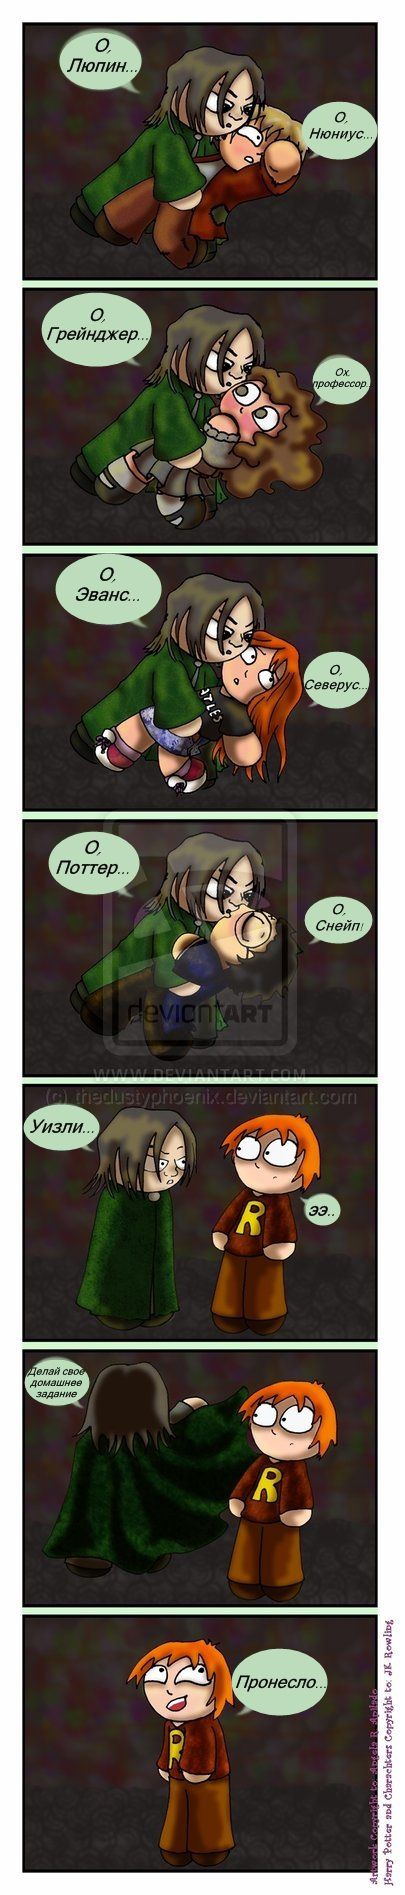 for_the_love_of_snape_by_thedustyphoenix-dieurt.jpg